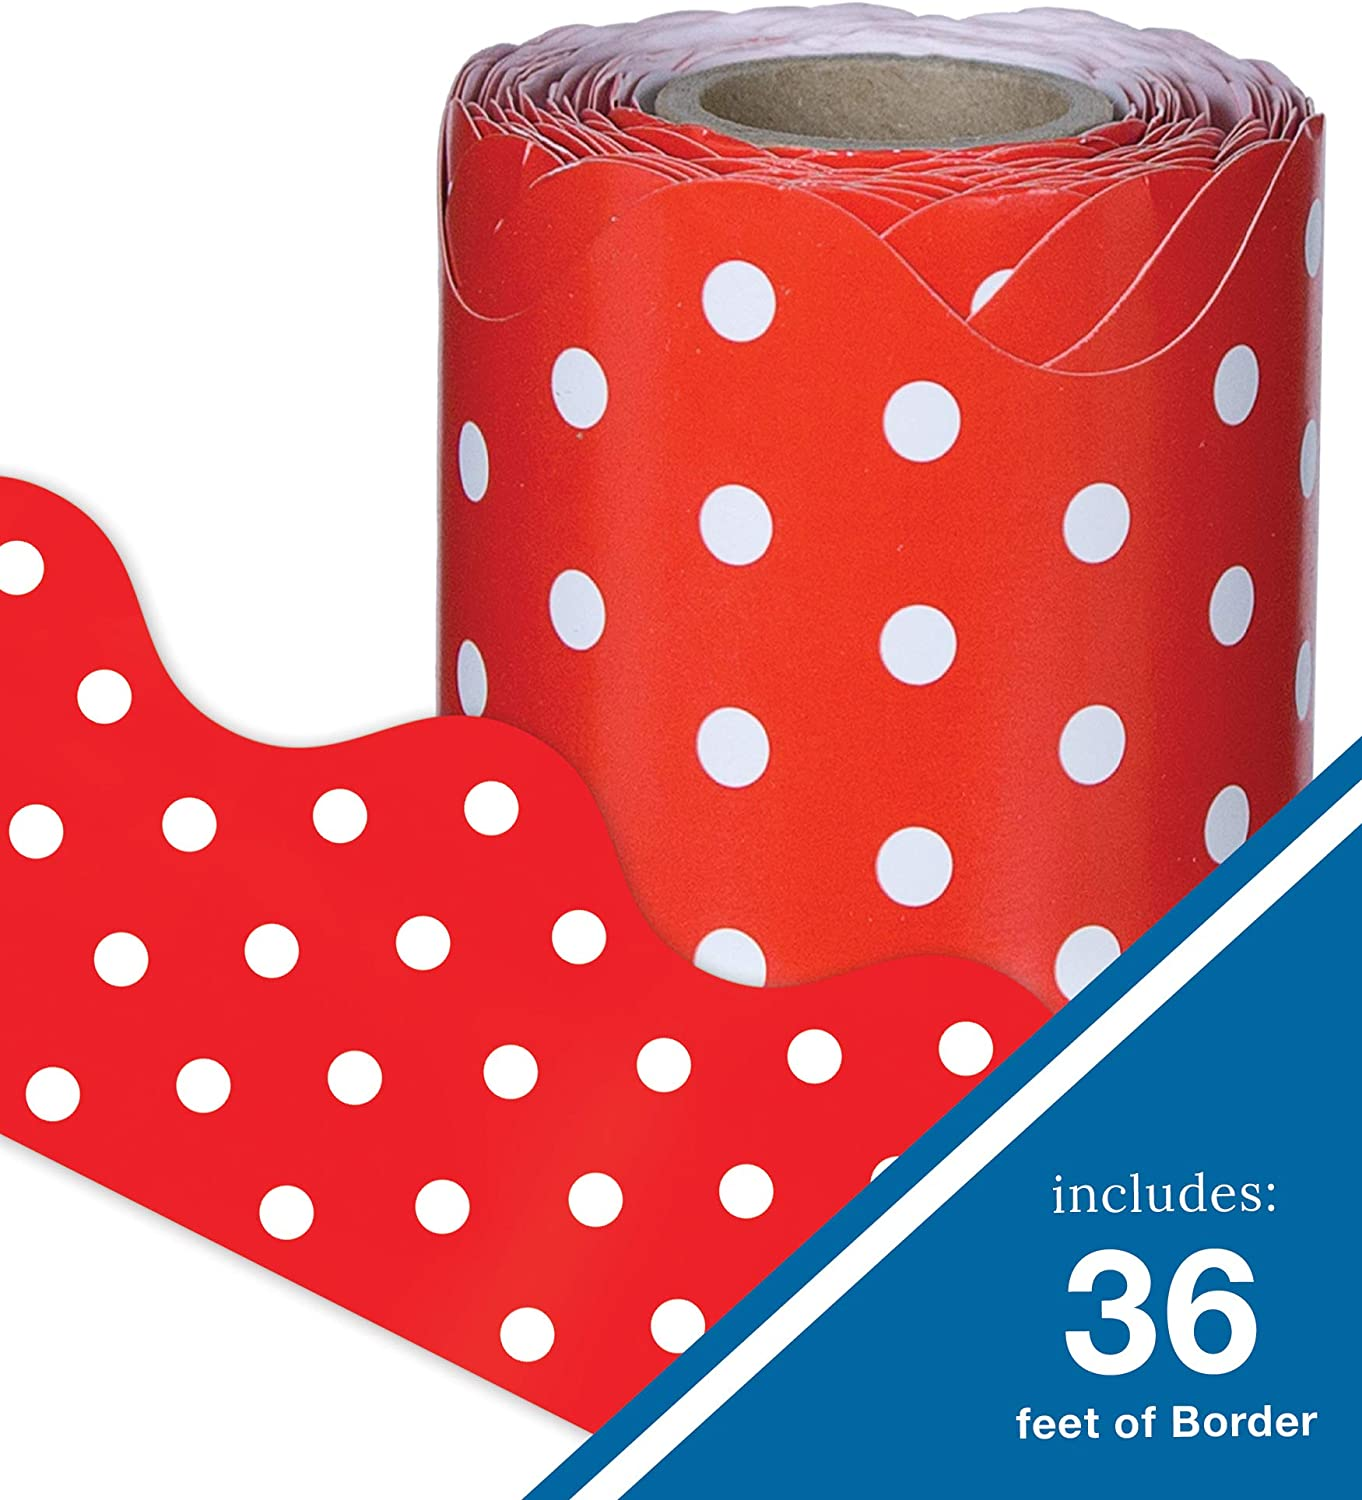 Red and White Dots Rolled Bulletin Board Borders, Carson Dellosa Classroom Decorations, 36 Feet